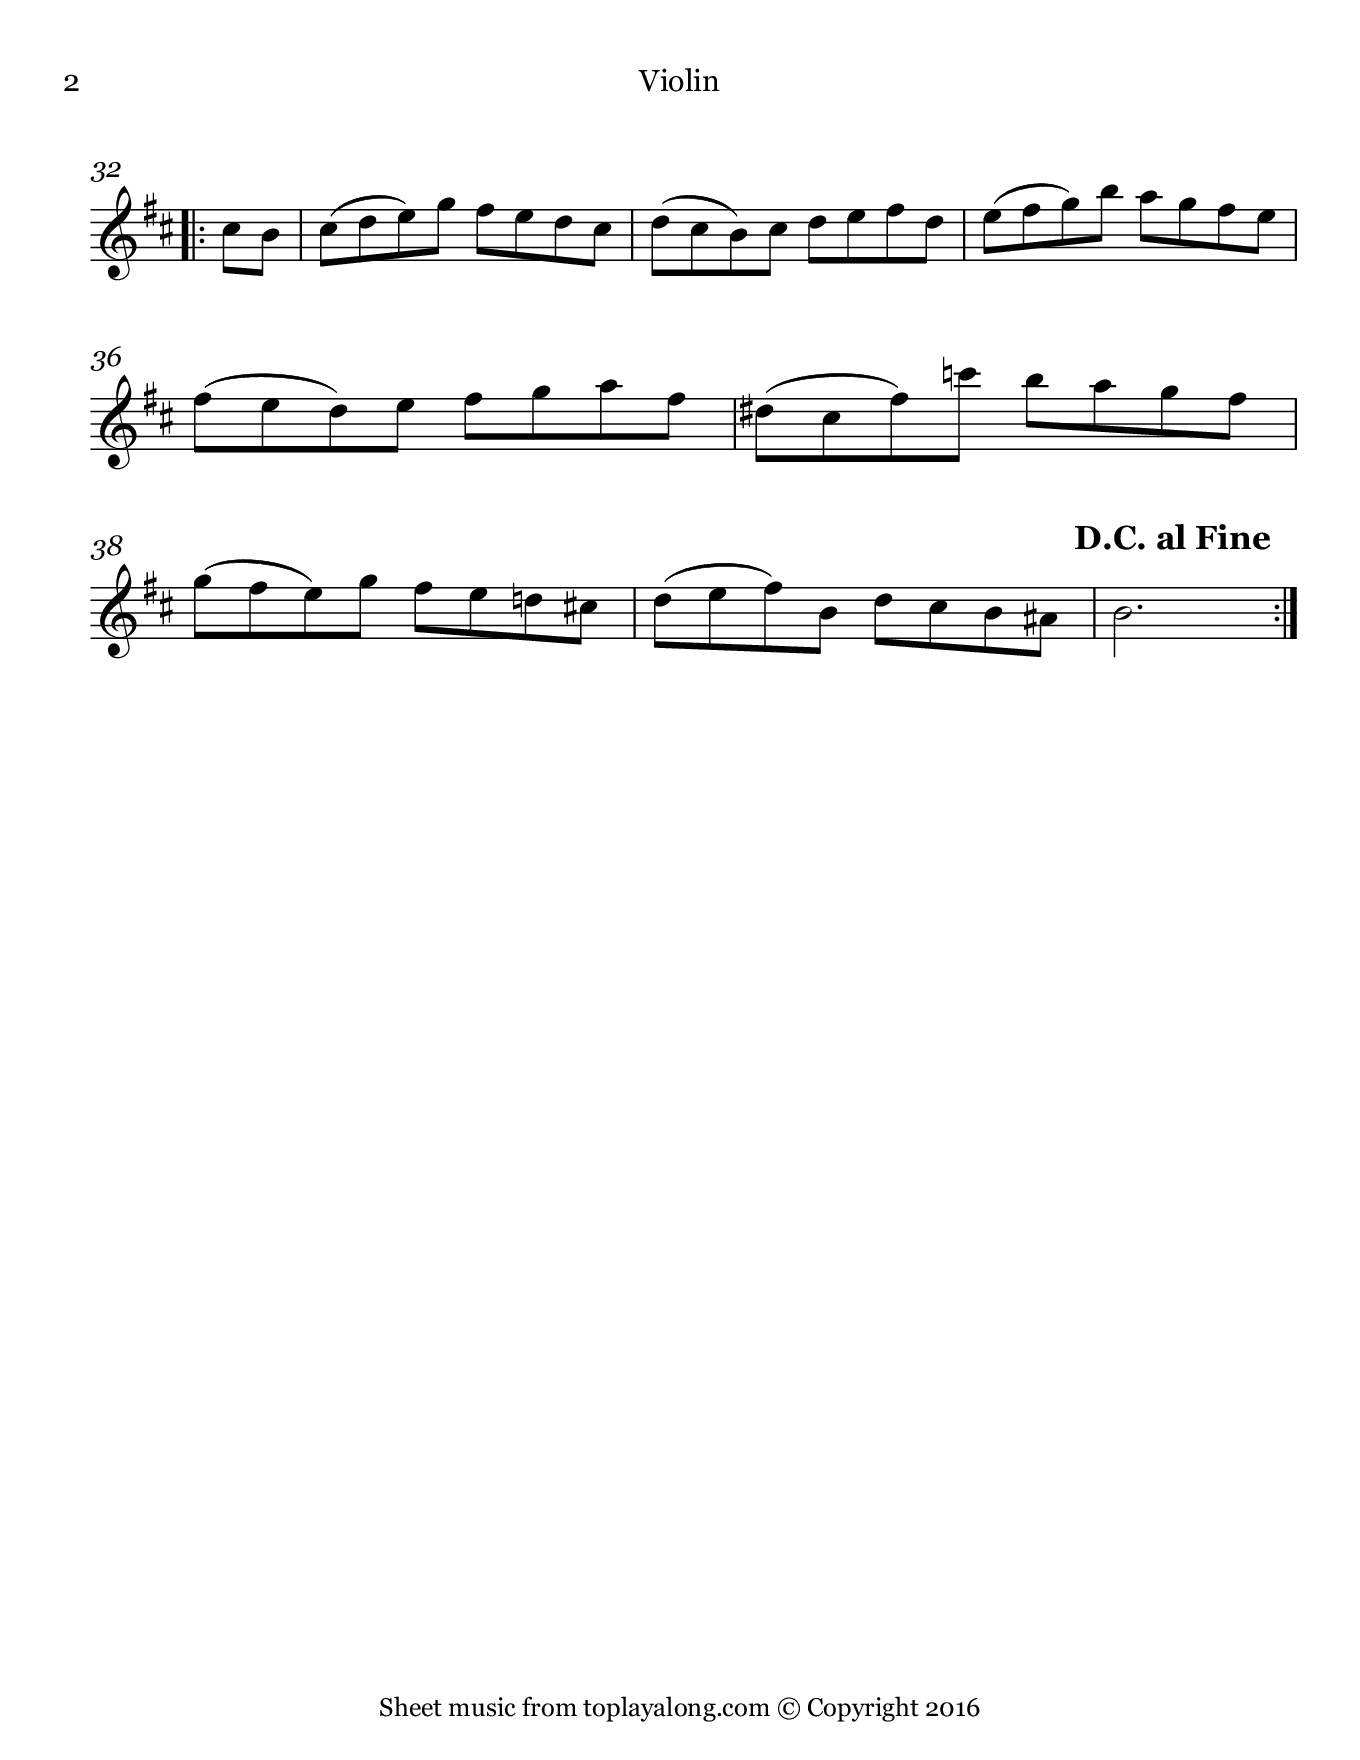 Orchestral Suite No. 2 (IV. Bourrée) by J. S. Bach. Sheet music for Violin, page 2.